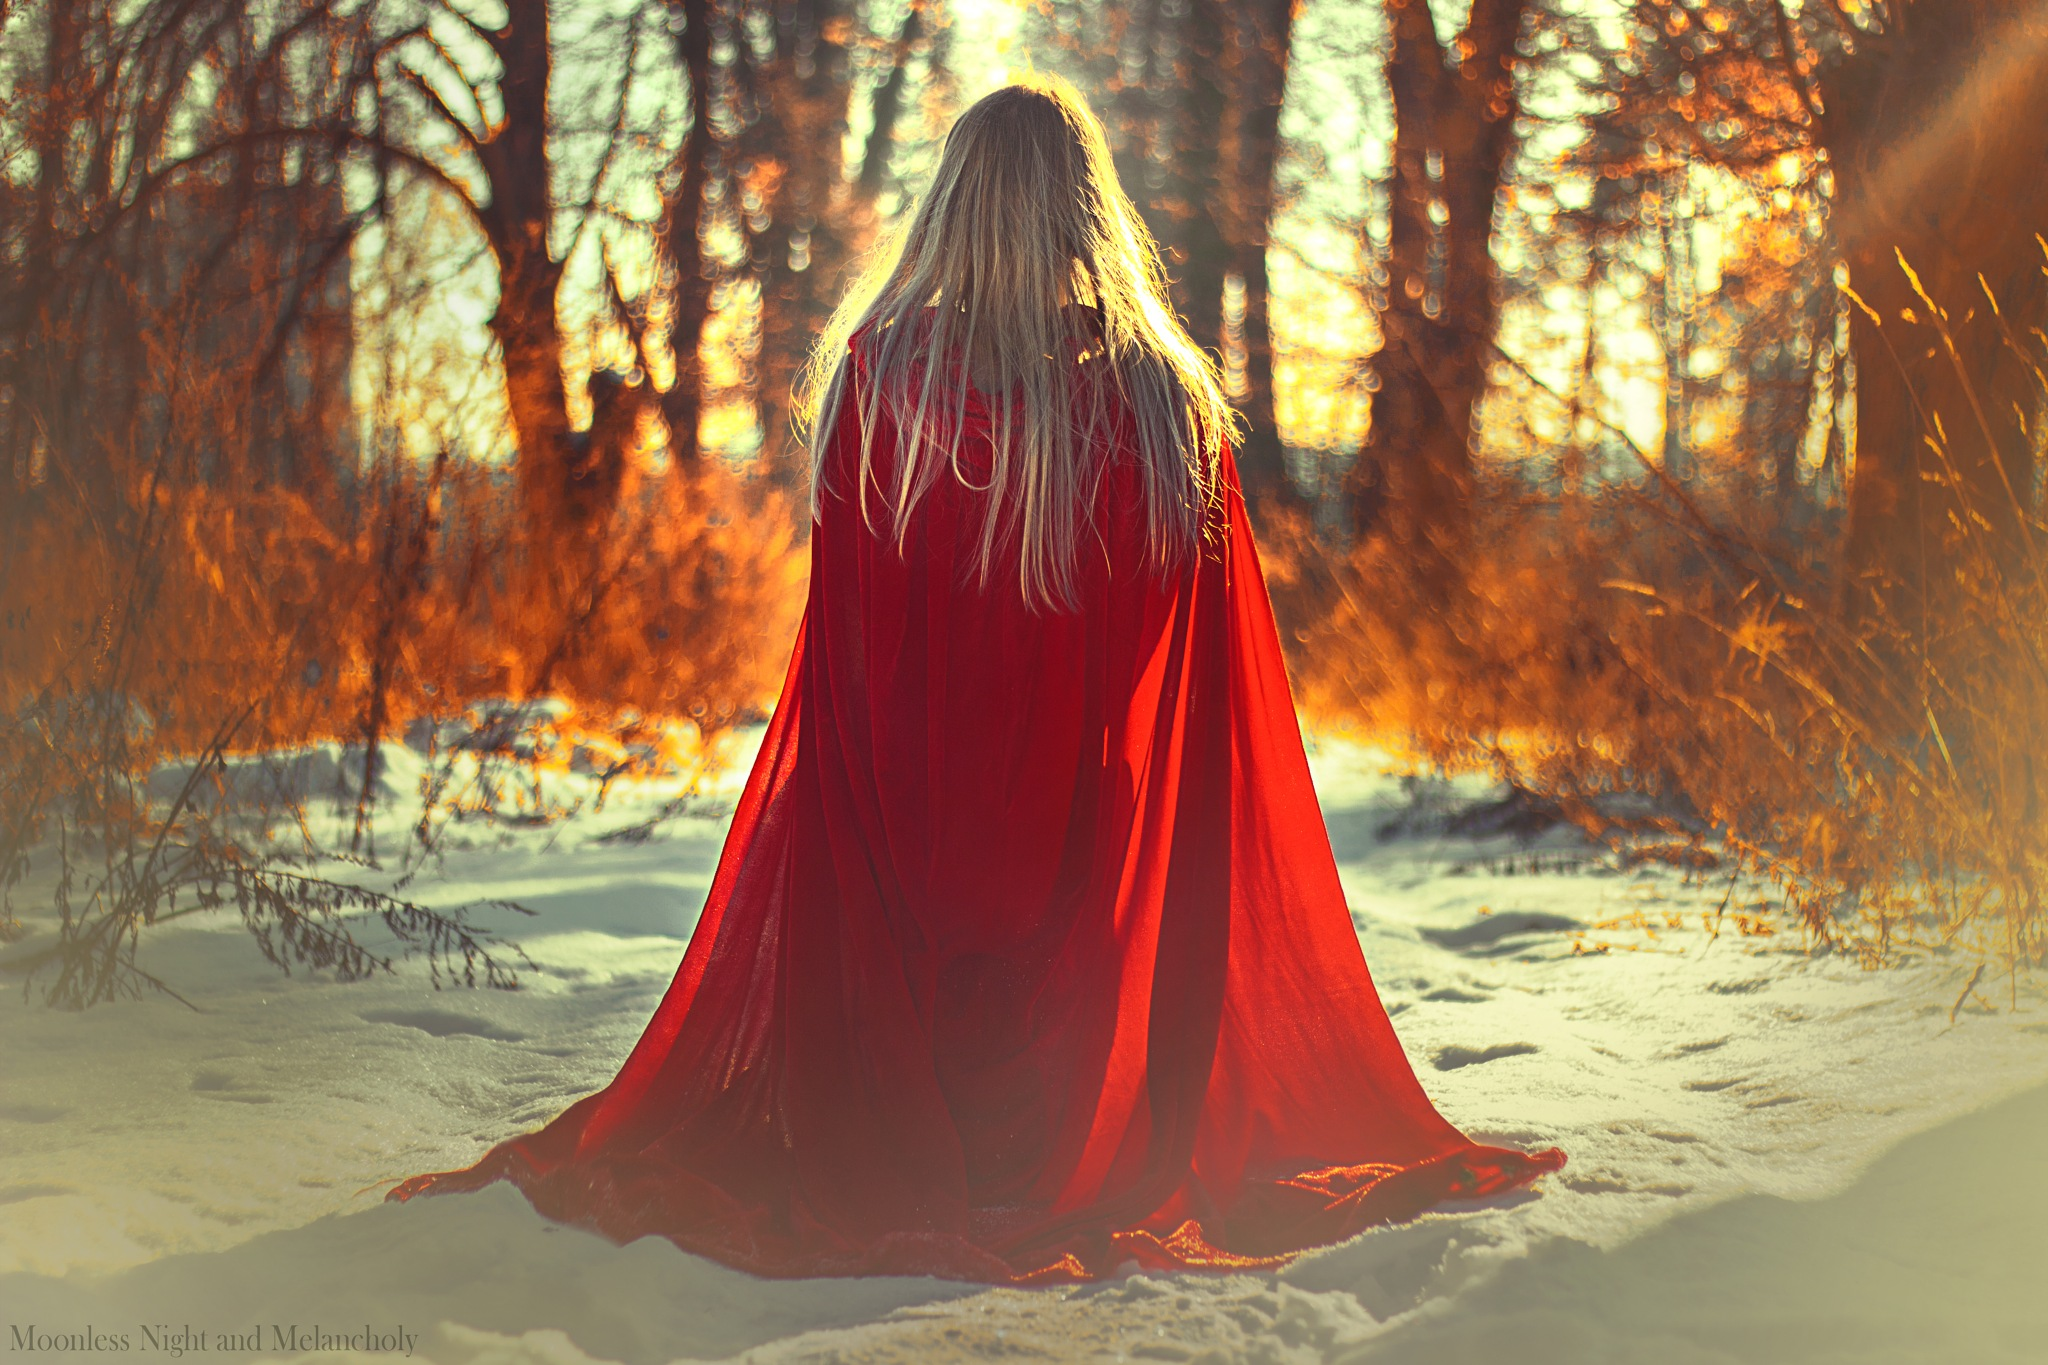 Red riding by Moonless_Night_and_Melancholy